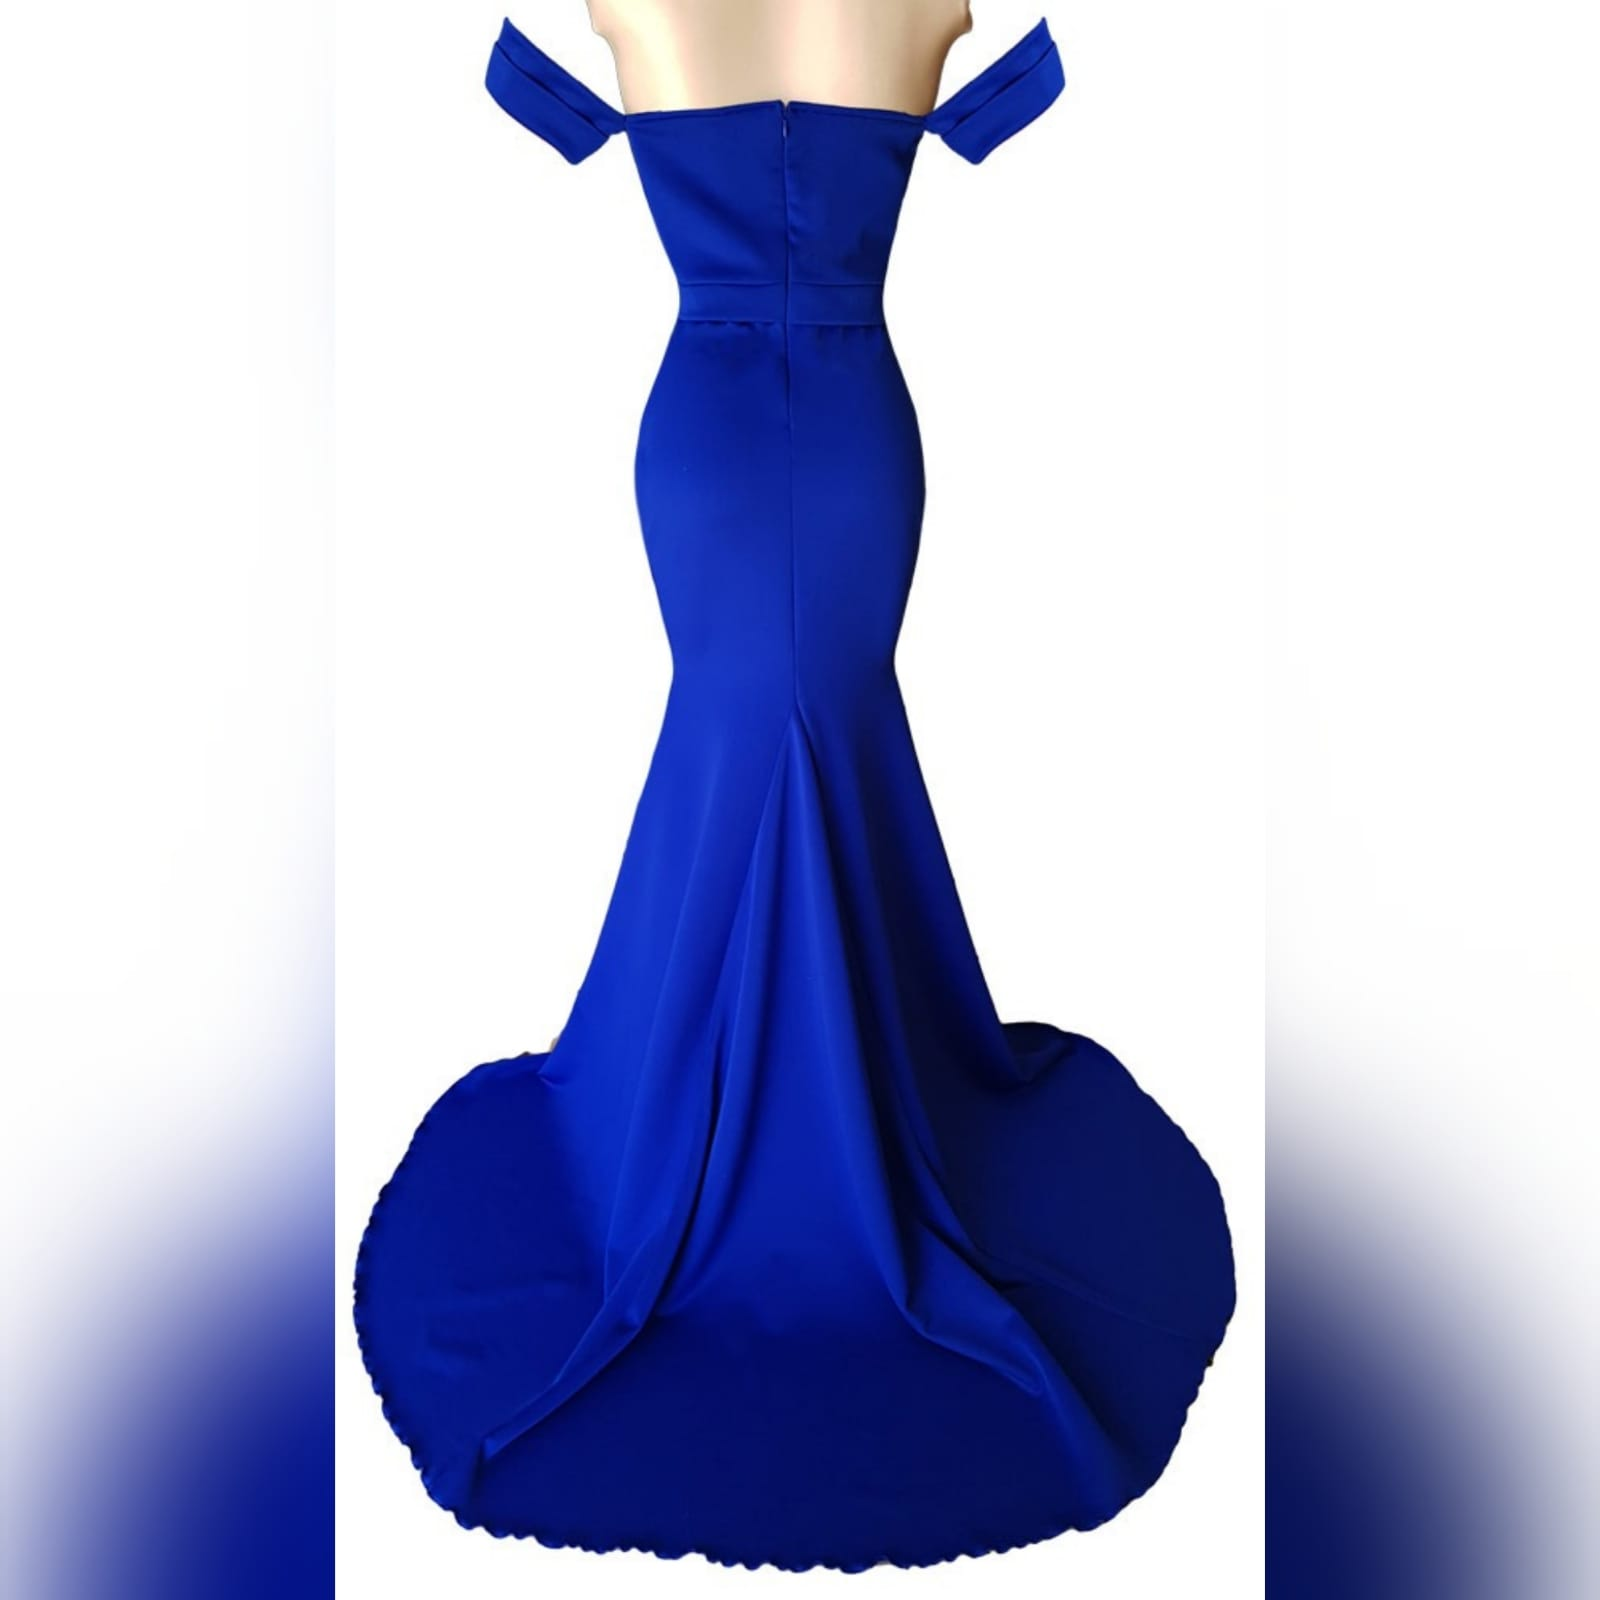 Simple royal blue soft mermaid dress 5 a simple royal blue soft mermaid dress, created for a debutantes ball. With a modern off-shoulder neckline and off-shoulder short sleeves. A belt effect to enhance the waist and a train for a touch of drama.